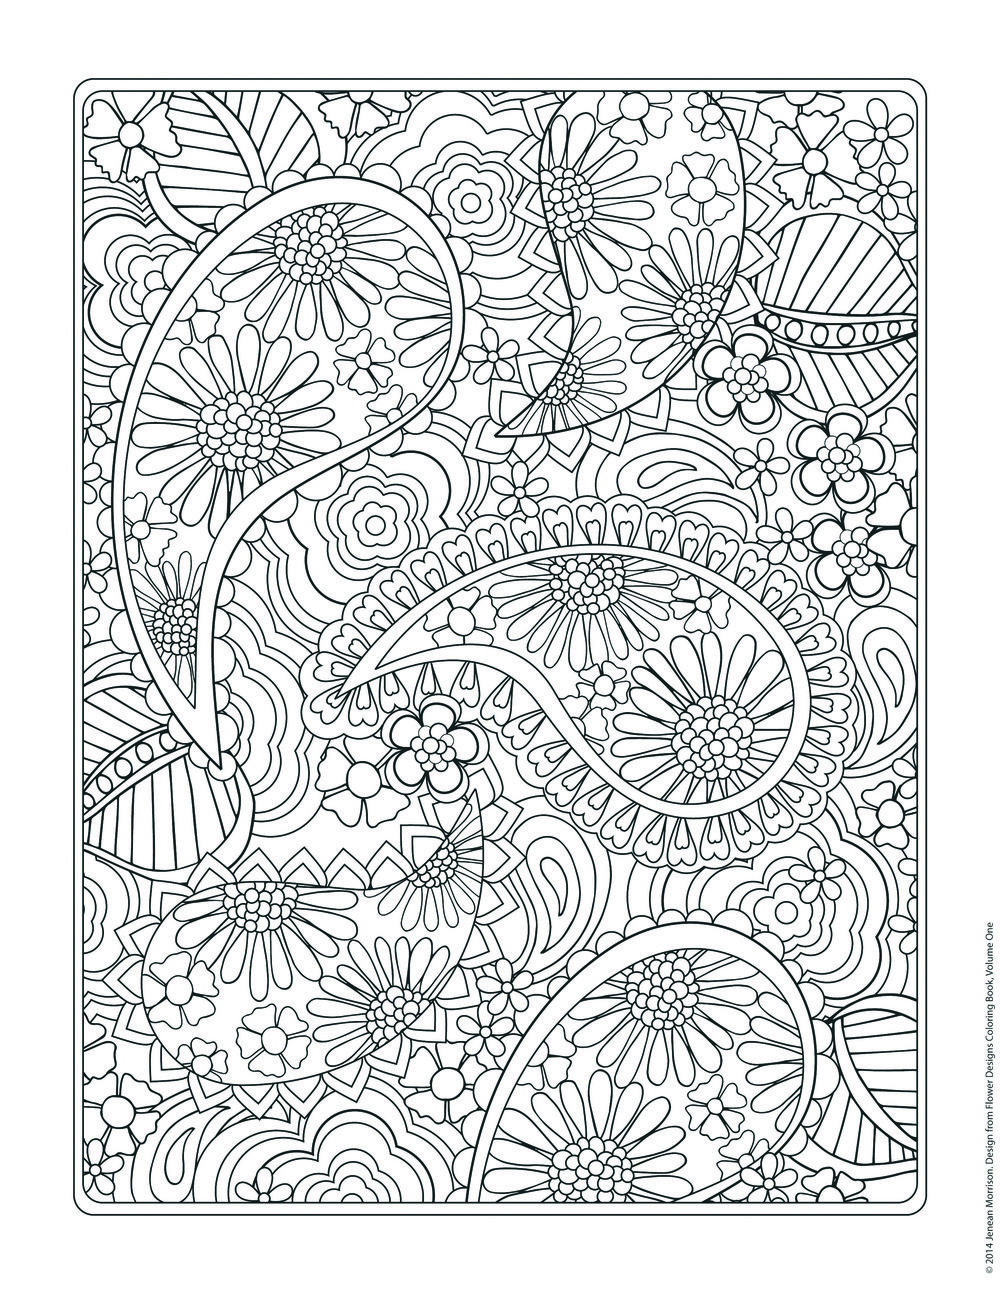 Charmant Free Coloring Page From Jenean Morrisonu0027s Flower Designs Coloring Book